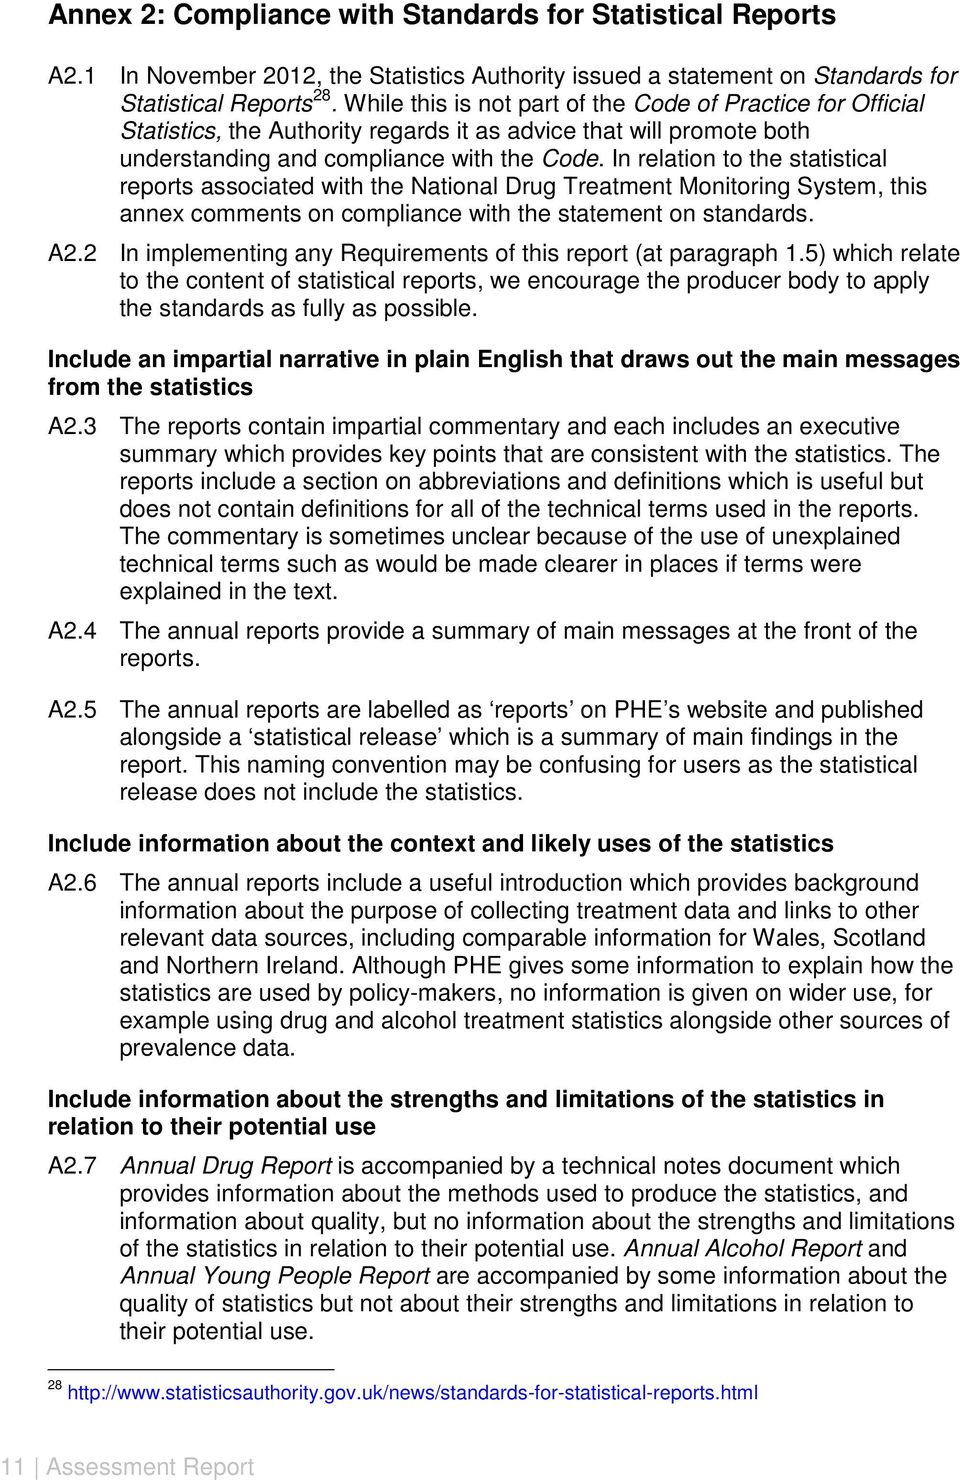 In relation to the statistical reports associated with the National Drug Treatment Monitoring System, this annex comments on compliance with the statement on standards. A2.